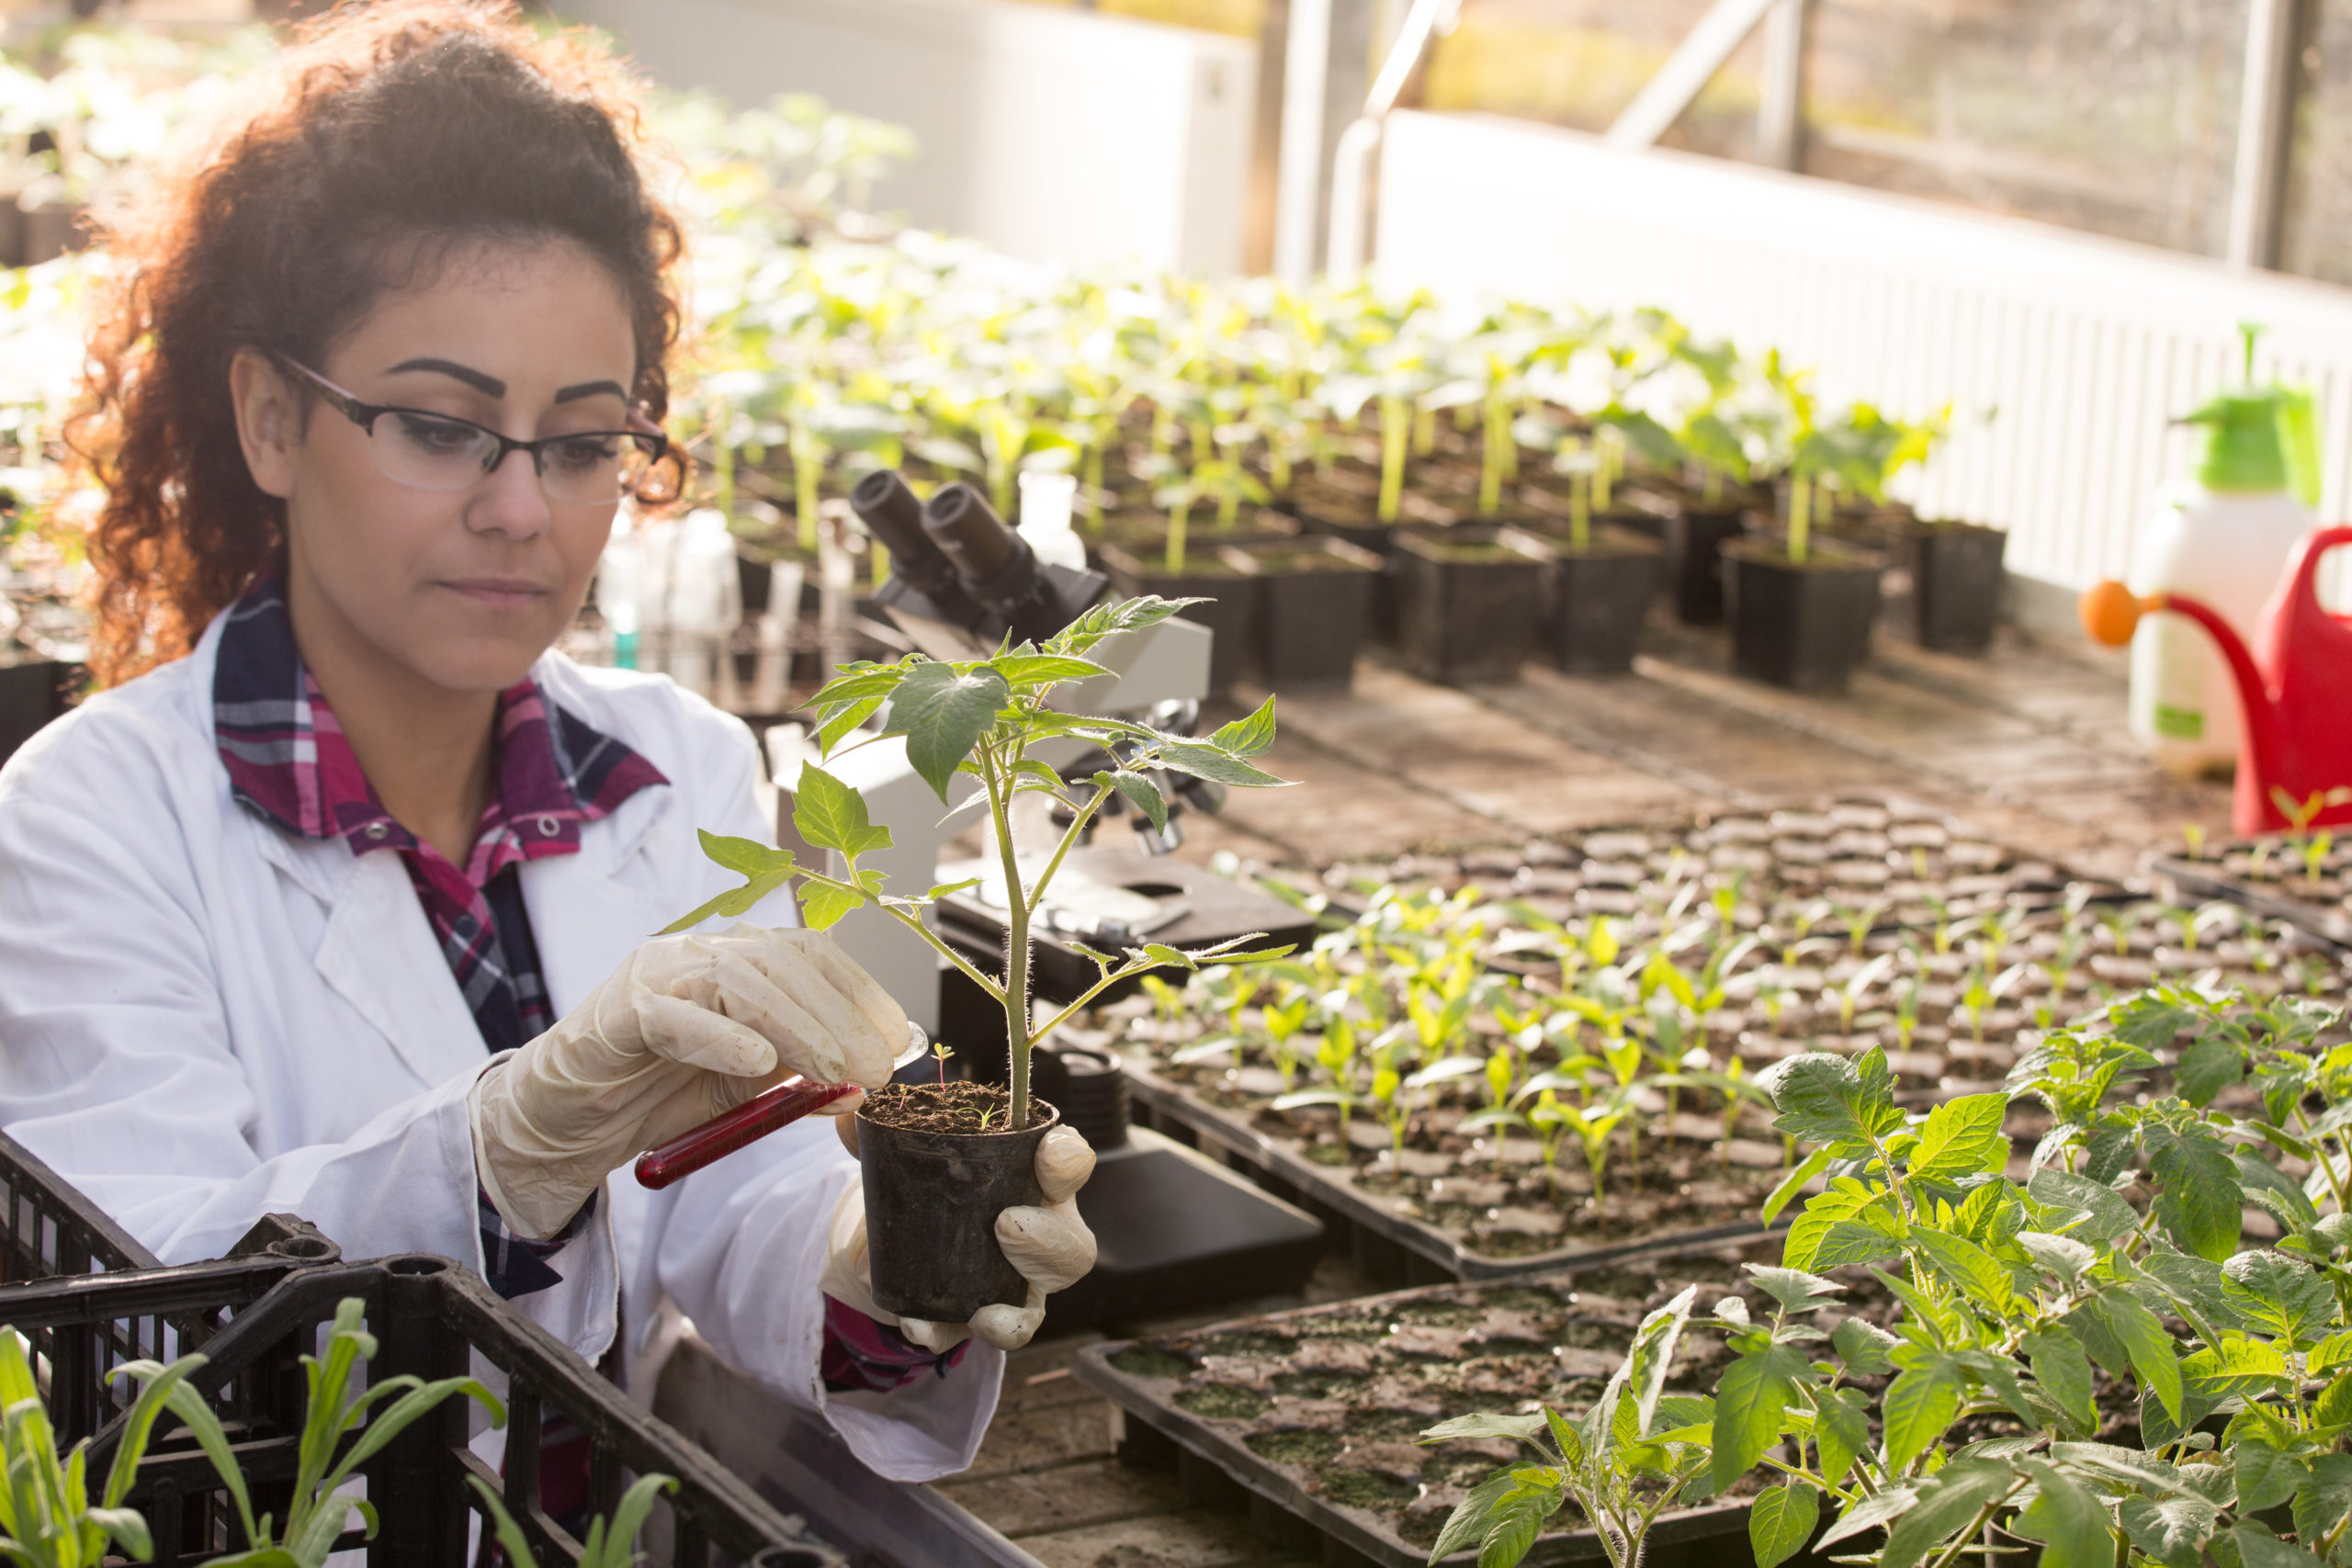 What Is The Difference Between A Horticulture Degree And An Agriculture Degree Best Choice Schools